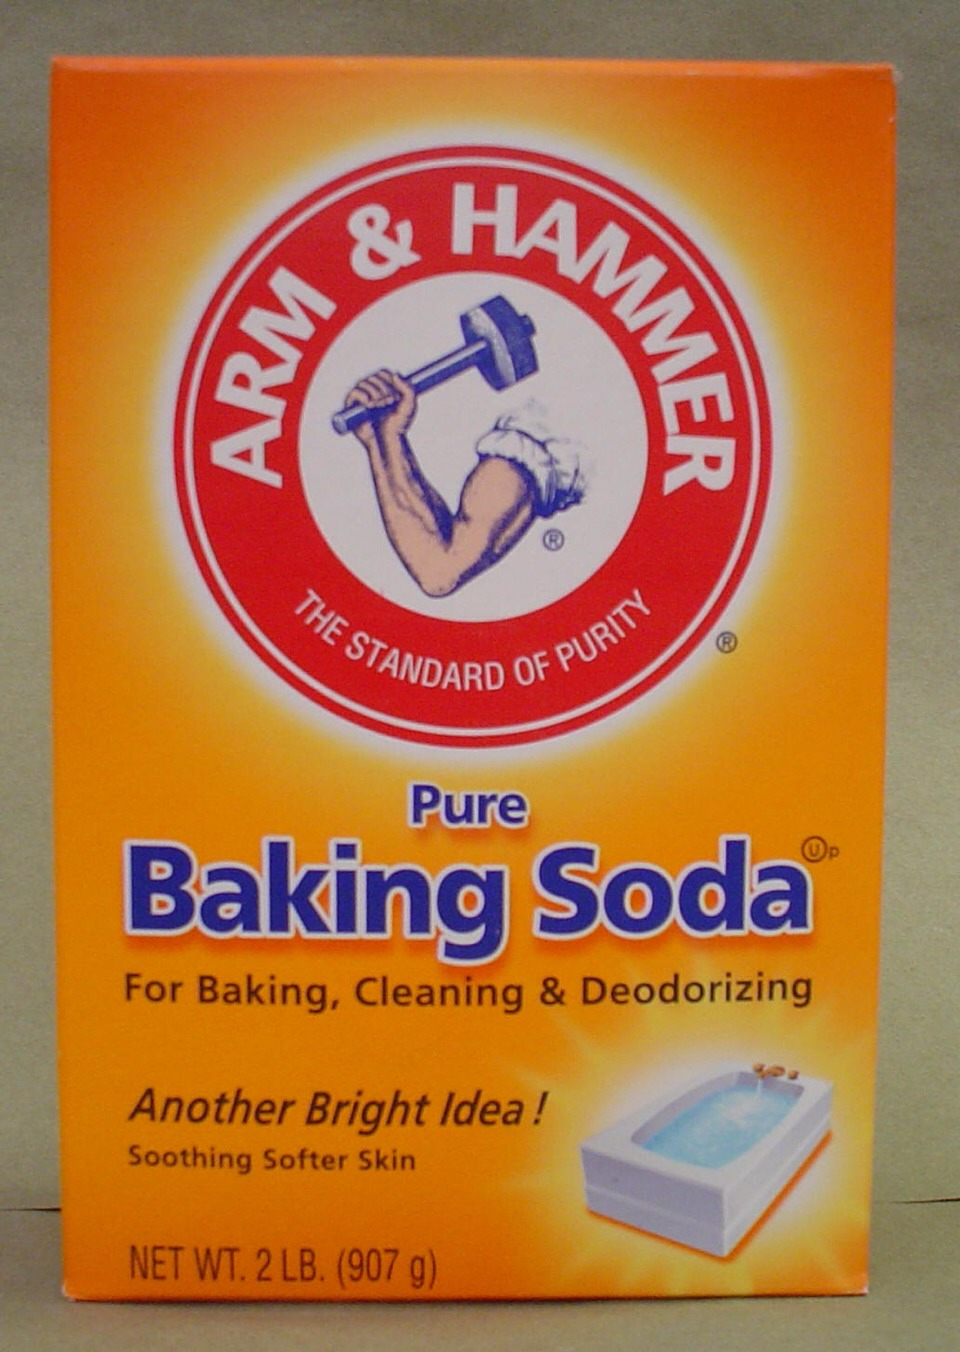 1 teaspoon of baking soda